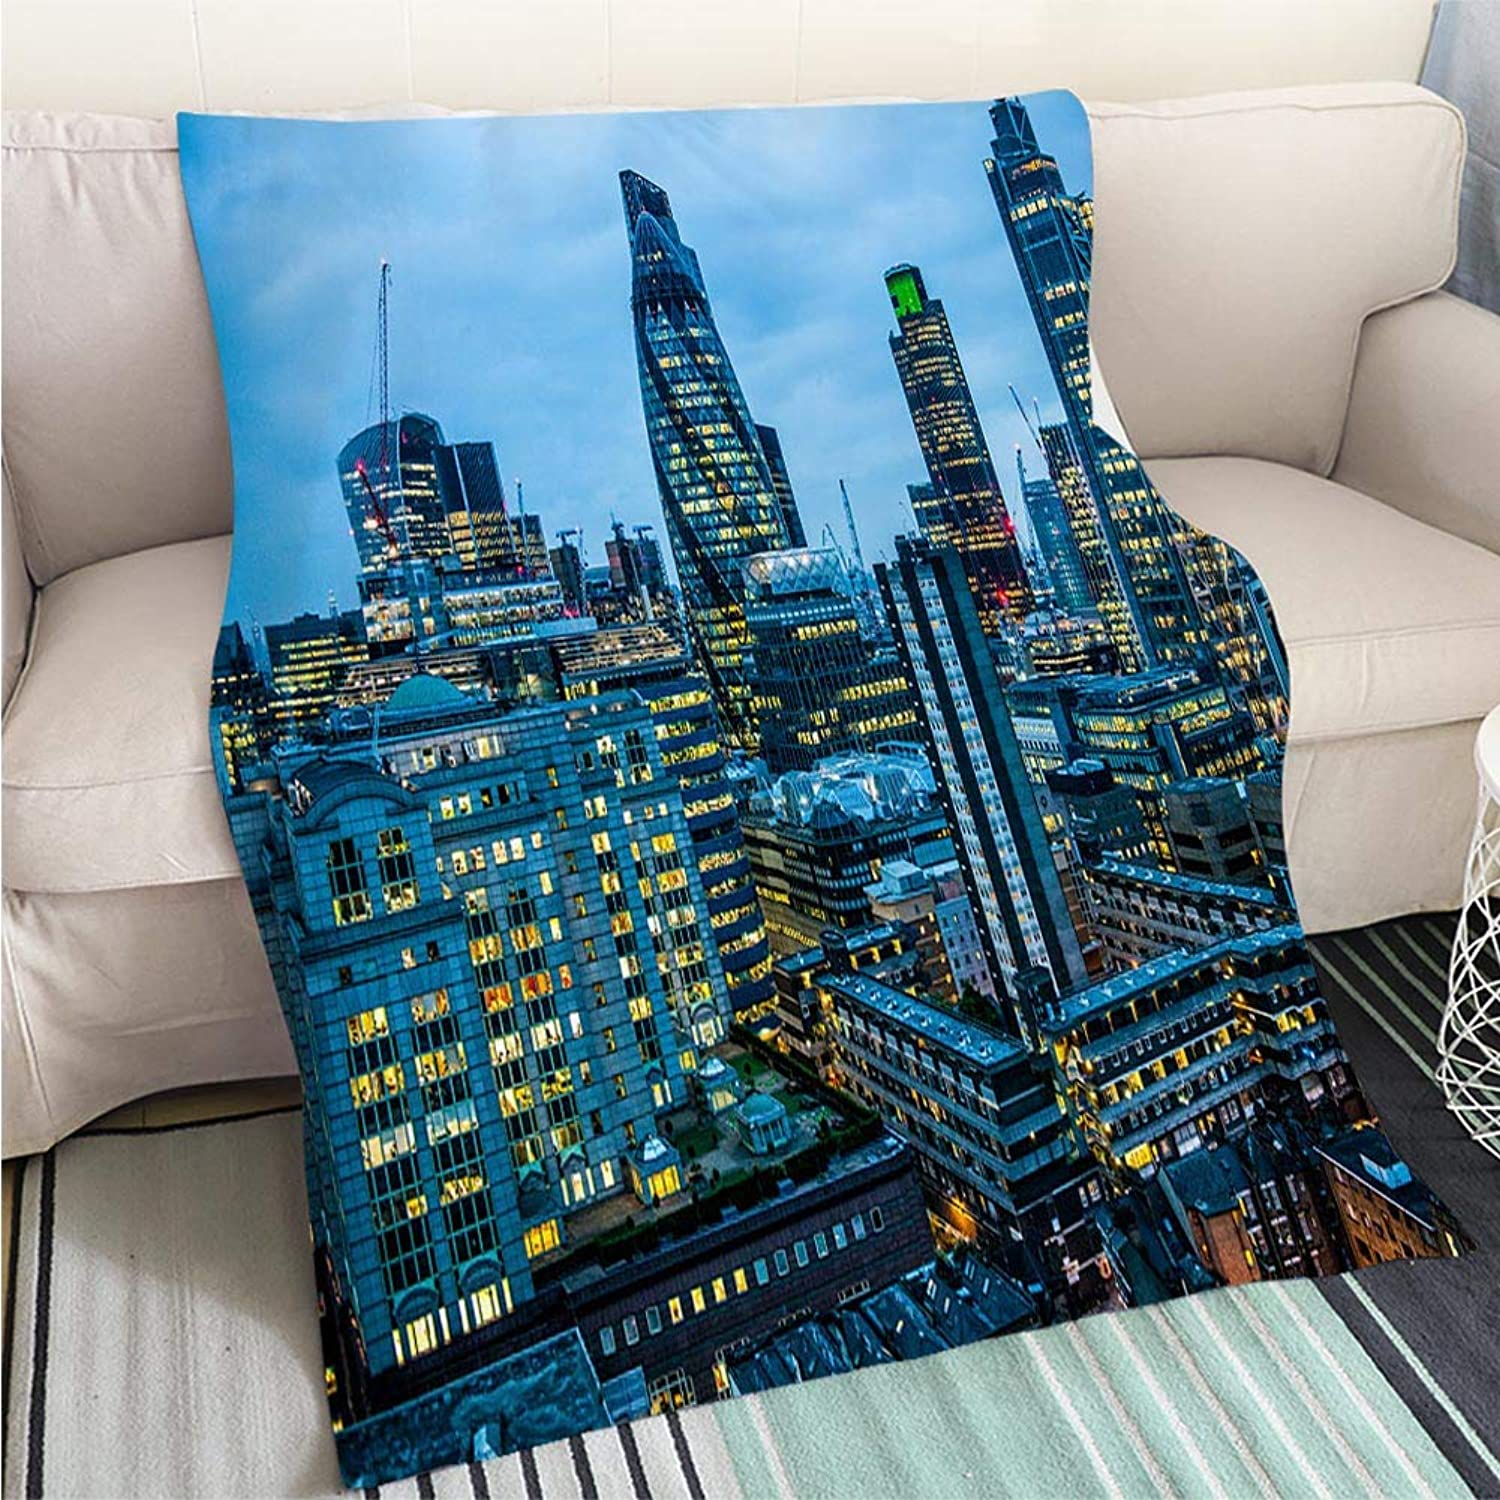 Art Design Photos Cool Quilt London England City Scape Perfect for Couch Sofa or Bed Cool Quilt